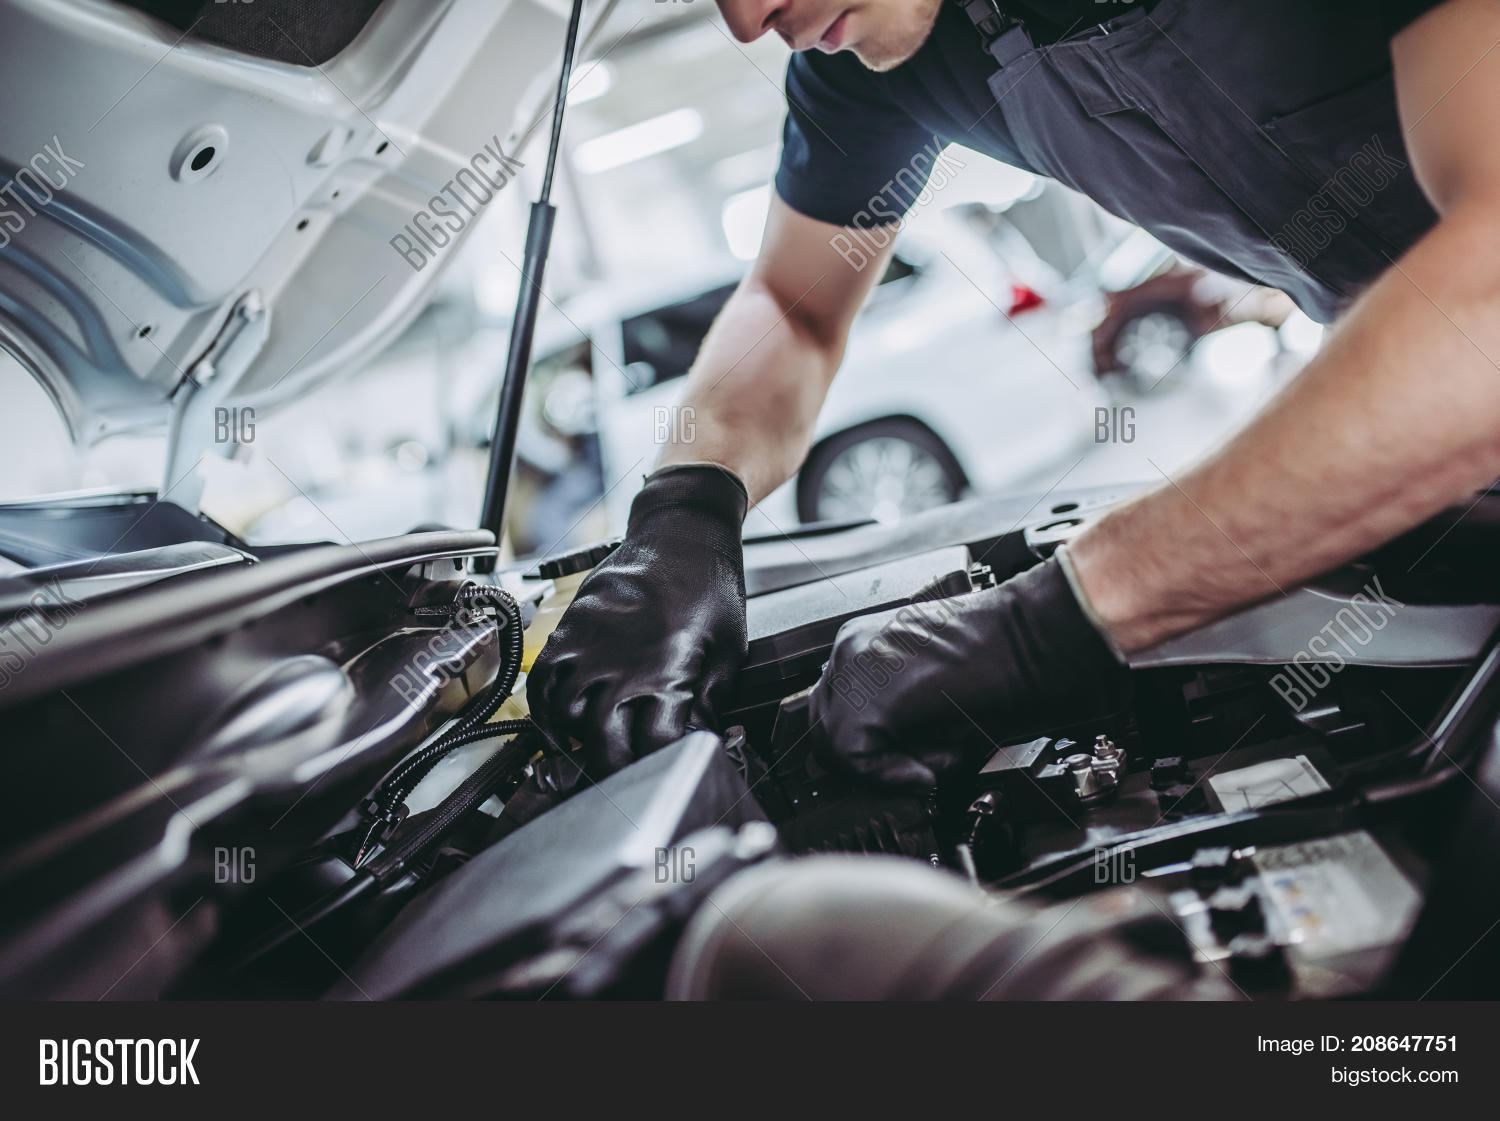 adult,auto,automobile,automotive,background,business,car,caucasian,check,cropped,engine,fix,garage,hand,handsome,happy,inspection,job,labor,maintenance,male,man,mechanic,mechanical,motor,oil,people,person,profession,professional,repair,repairman,safety,service,shop,smiling,station,technician,tool,transport,uniform,vehicle,white,work,worker,workshop,wrench,young